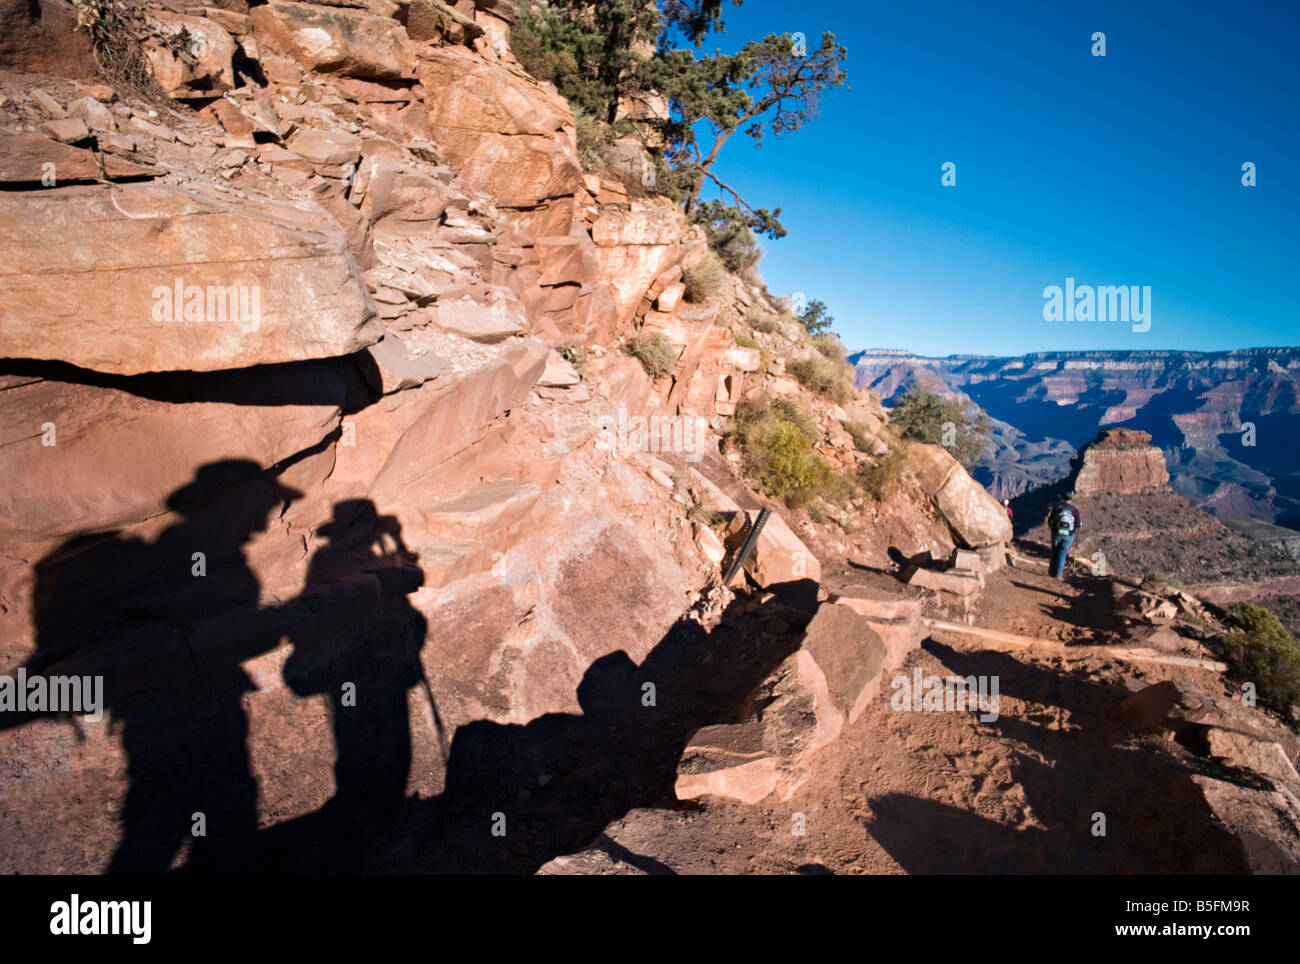 ARIZONA GRAND CANYON Shadows of hikers pausing to take a photo on the South Kaibab Trail into the Grand Canyon - Stock Image